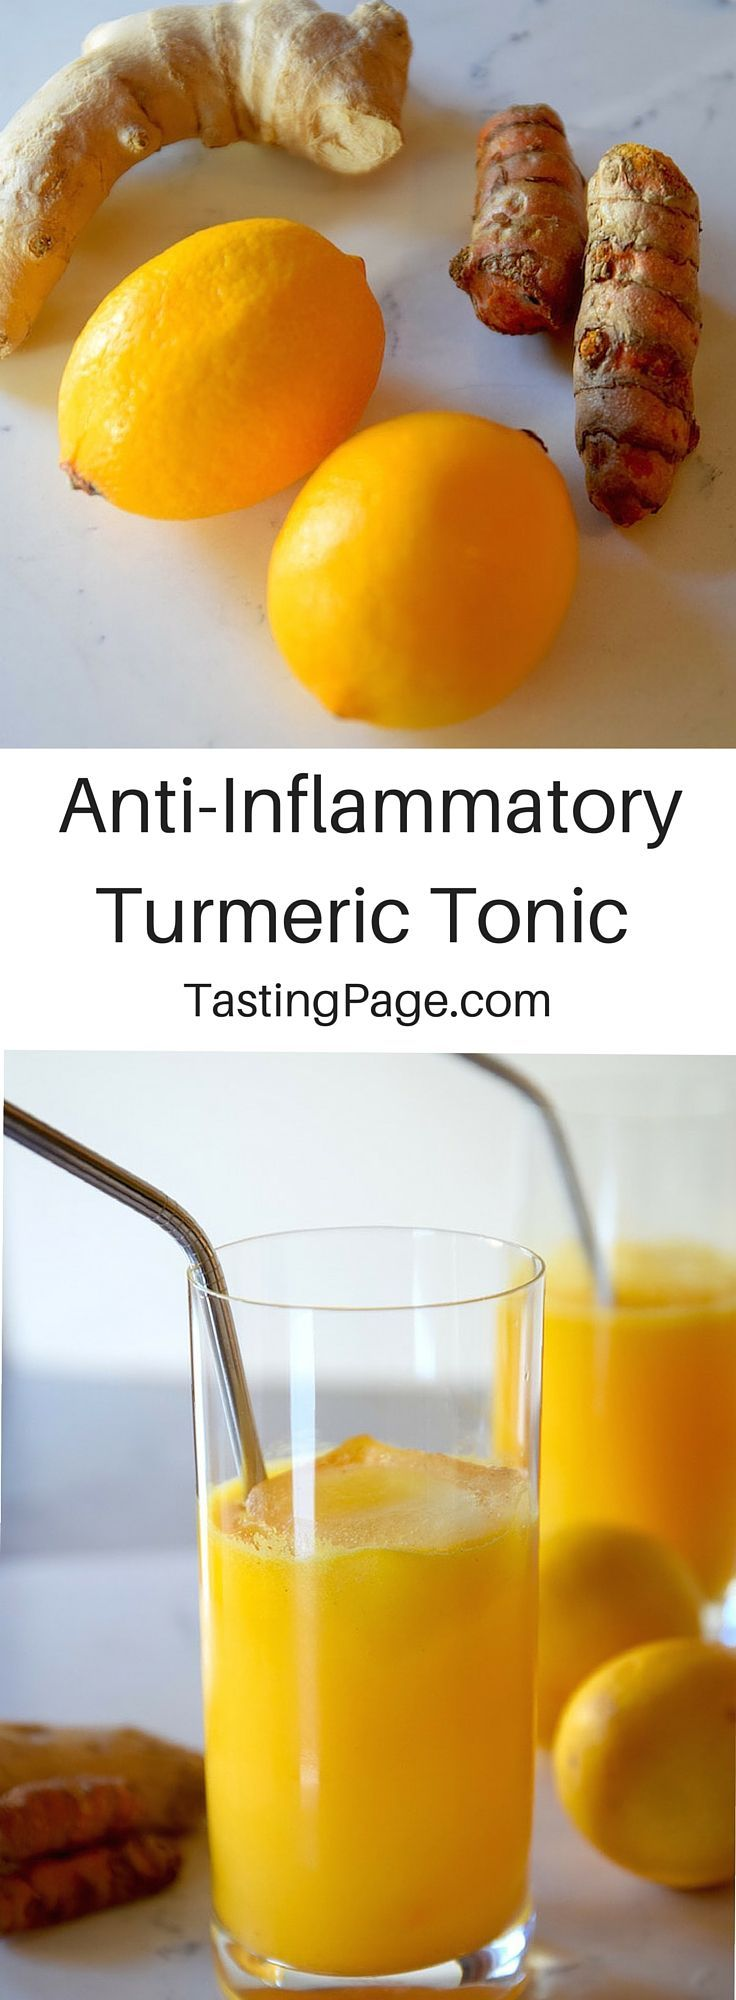 Anti-Inflammatory Turmeric Tonic - stay healthy this winter with this delicious, cancer fighting drink | TastingPage.com